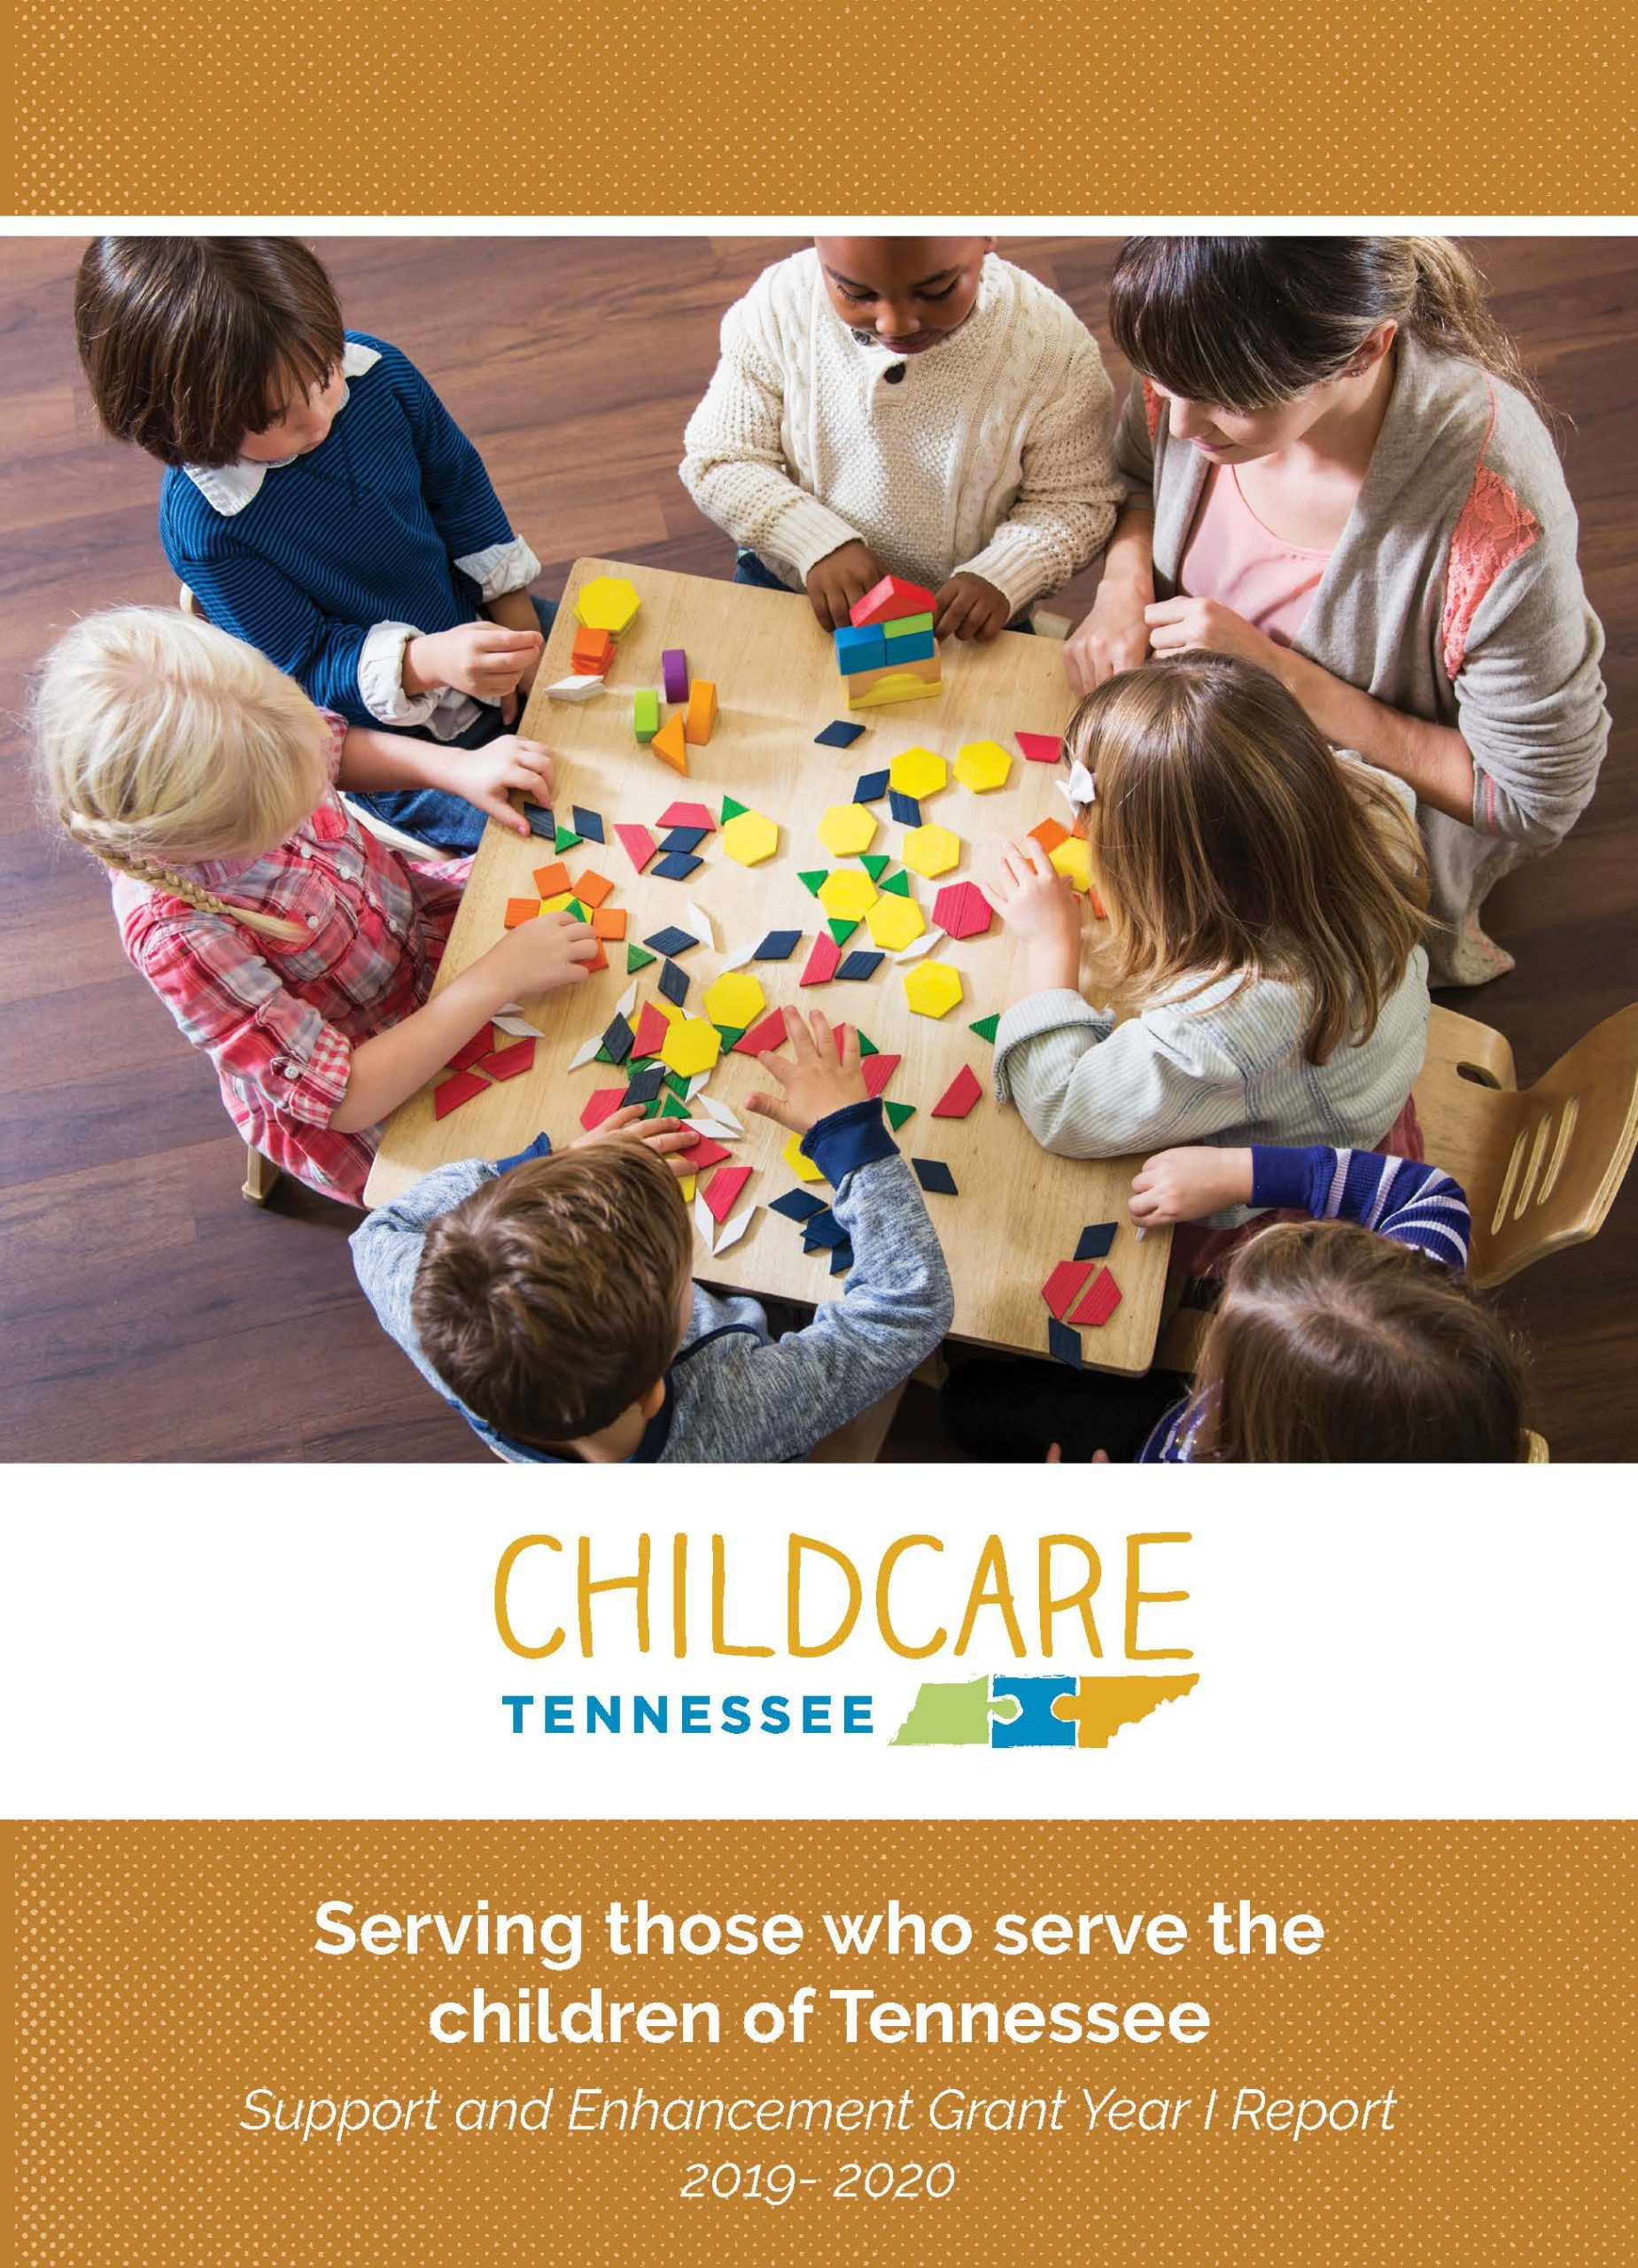 ChildcareTennessee Year I Support and Enhancement Grant Report